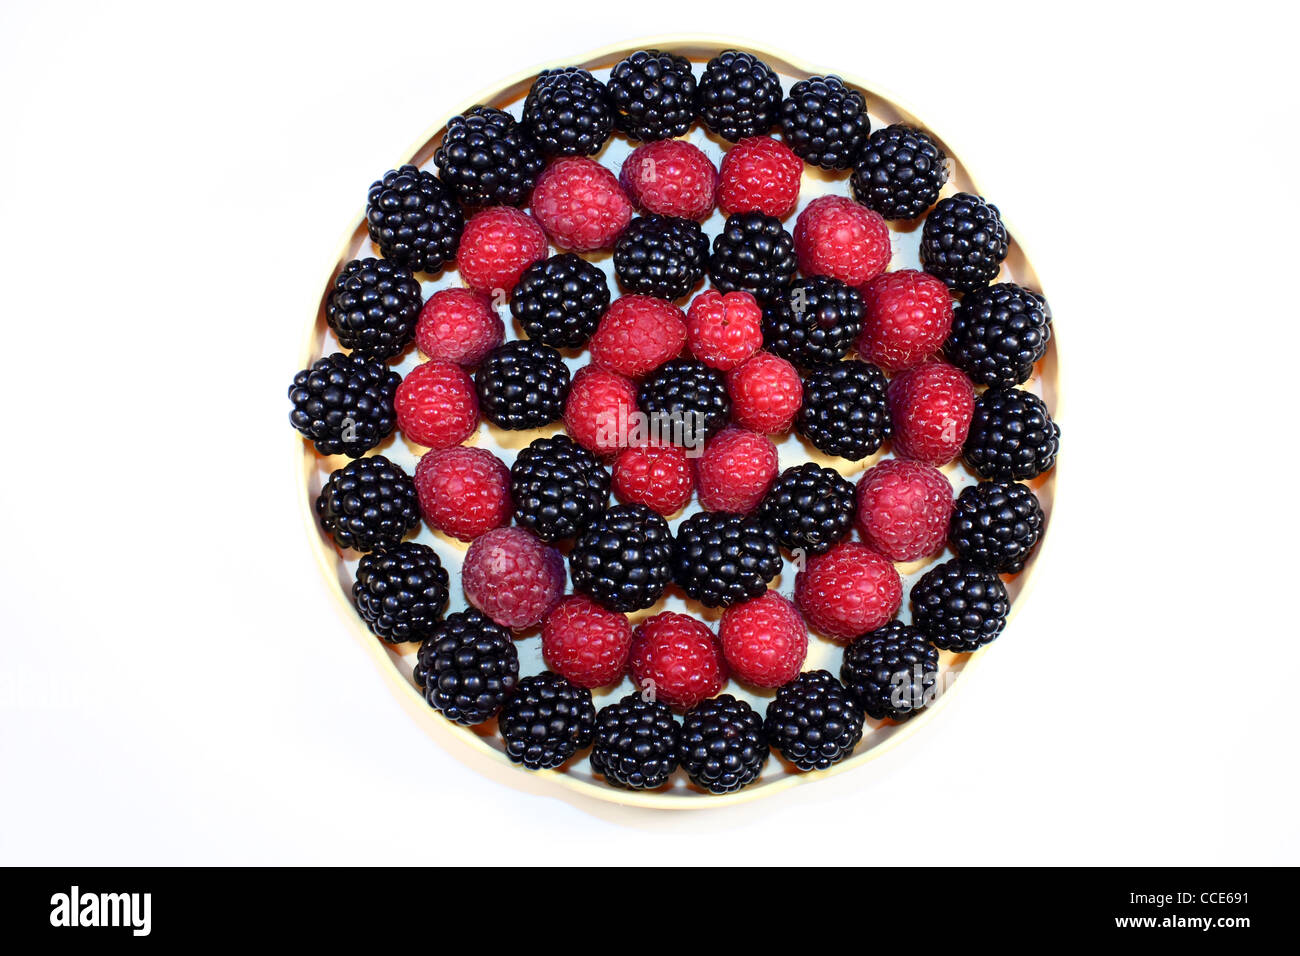 Fresh raspberries and blackberries in a little dish, ordered in a circle - Stock Image